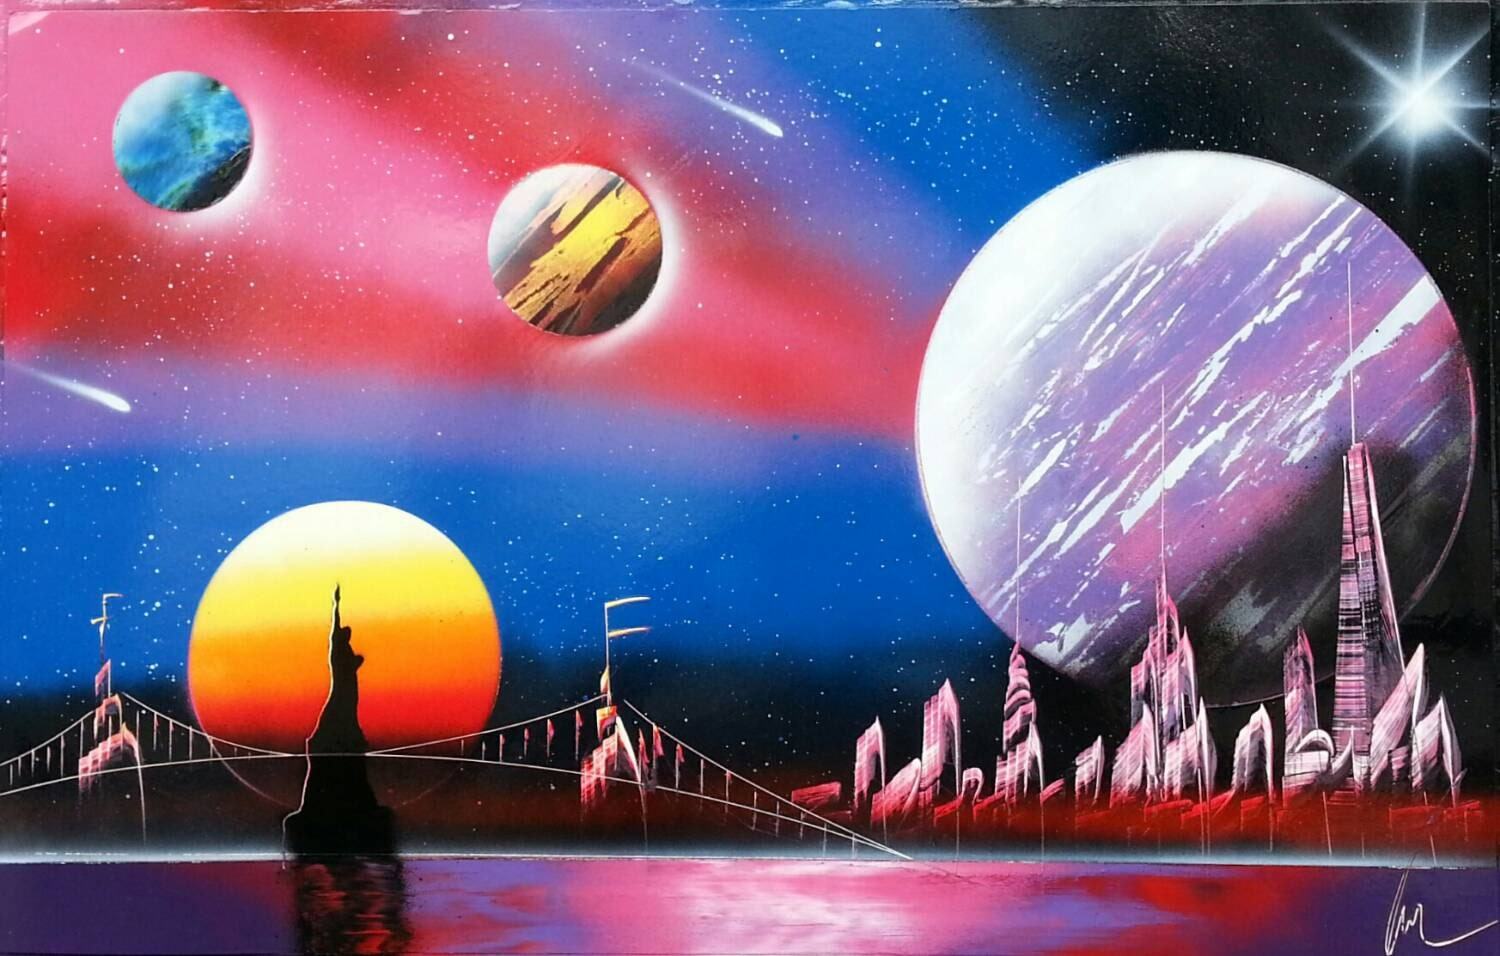 Nyc Street Art Spray Paint Art Space Painting